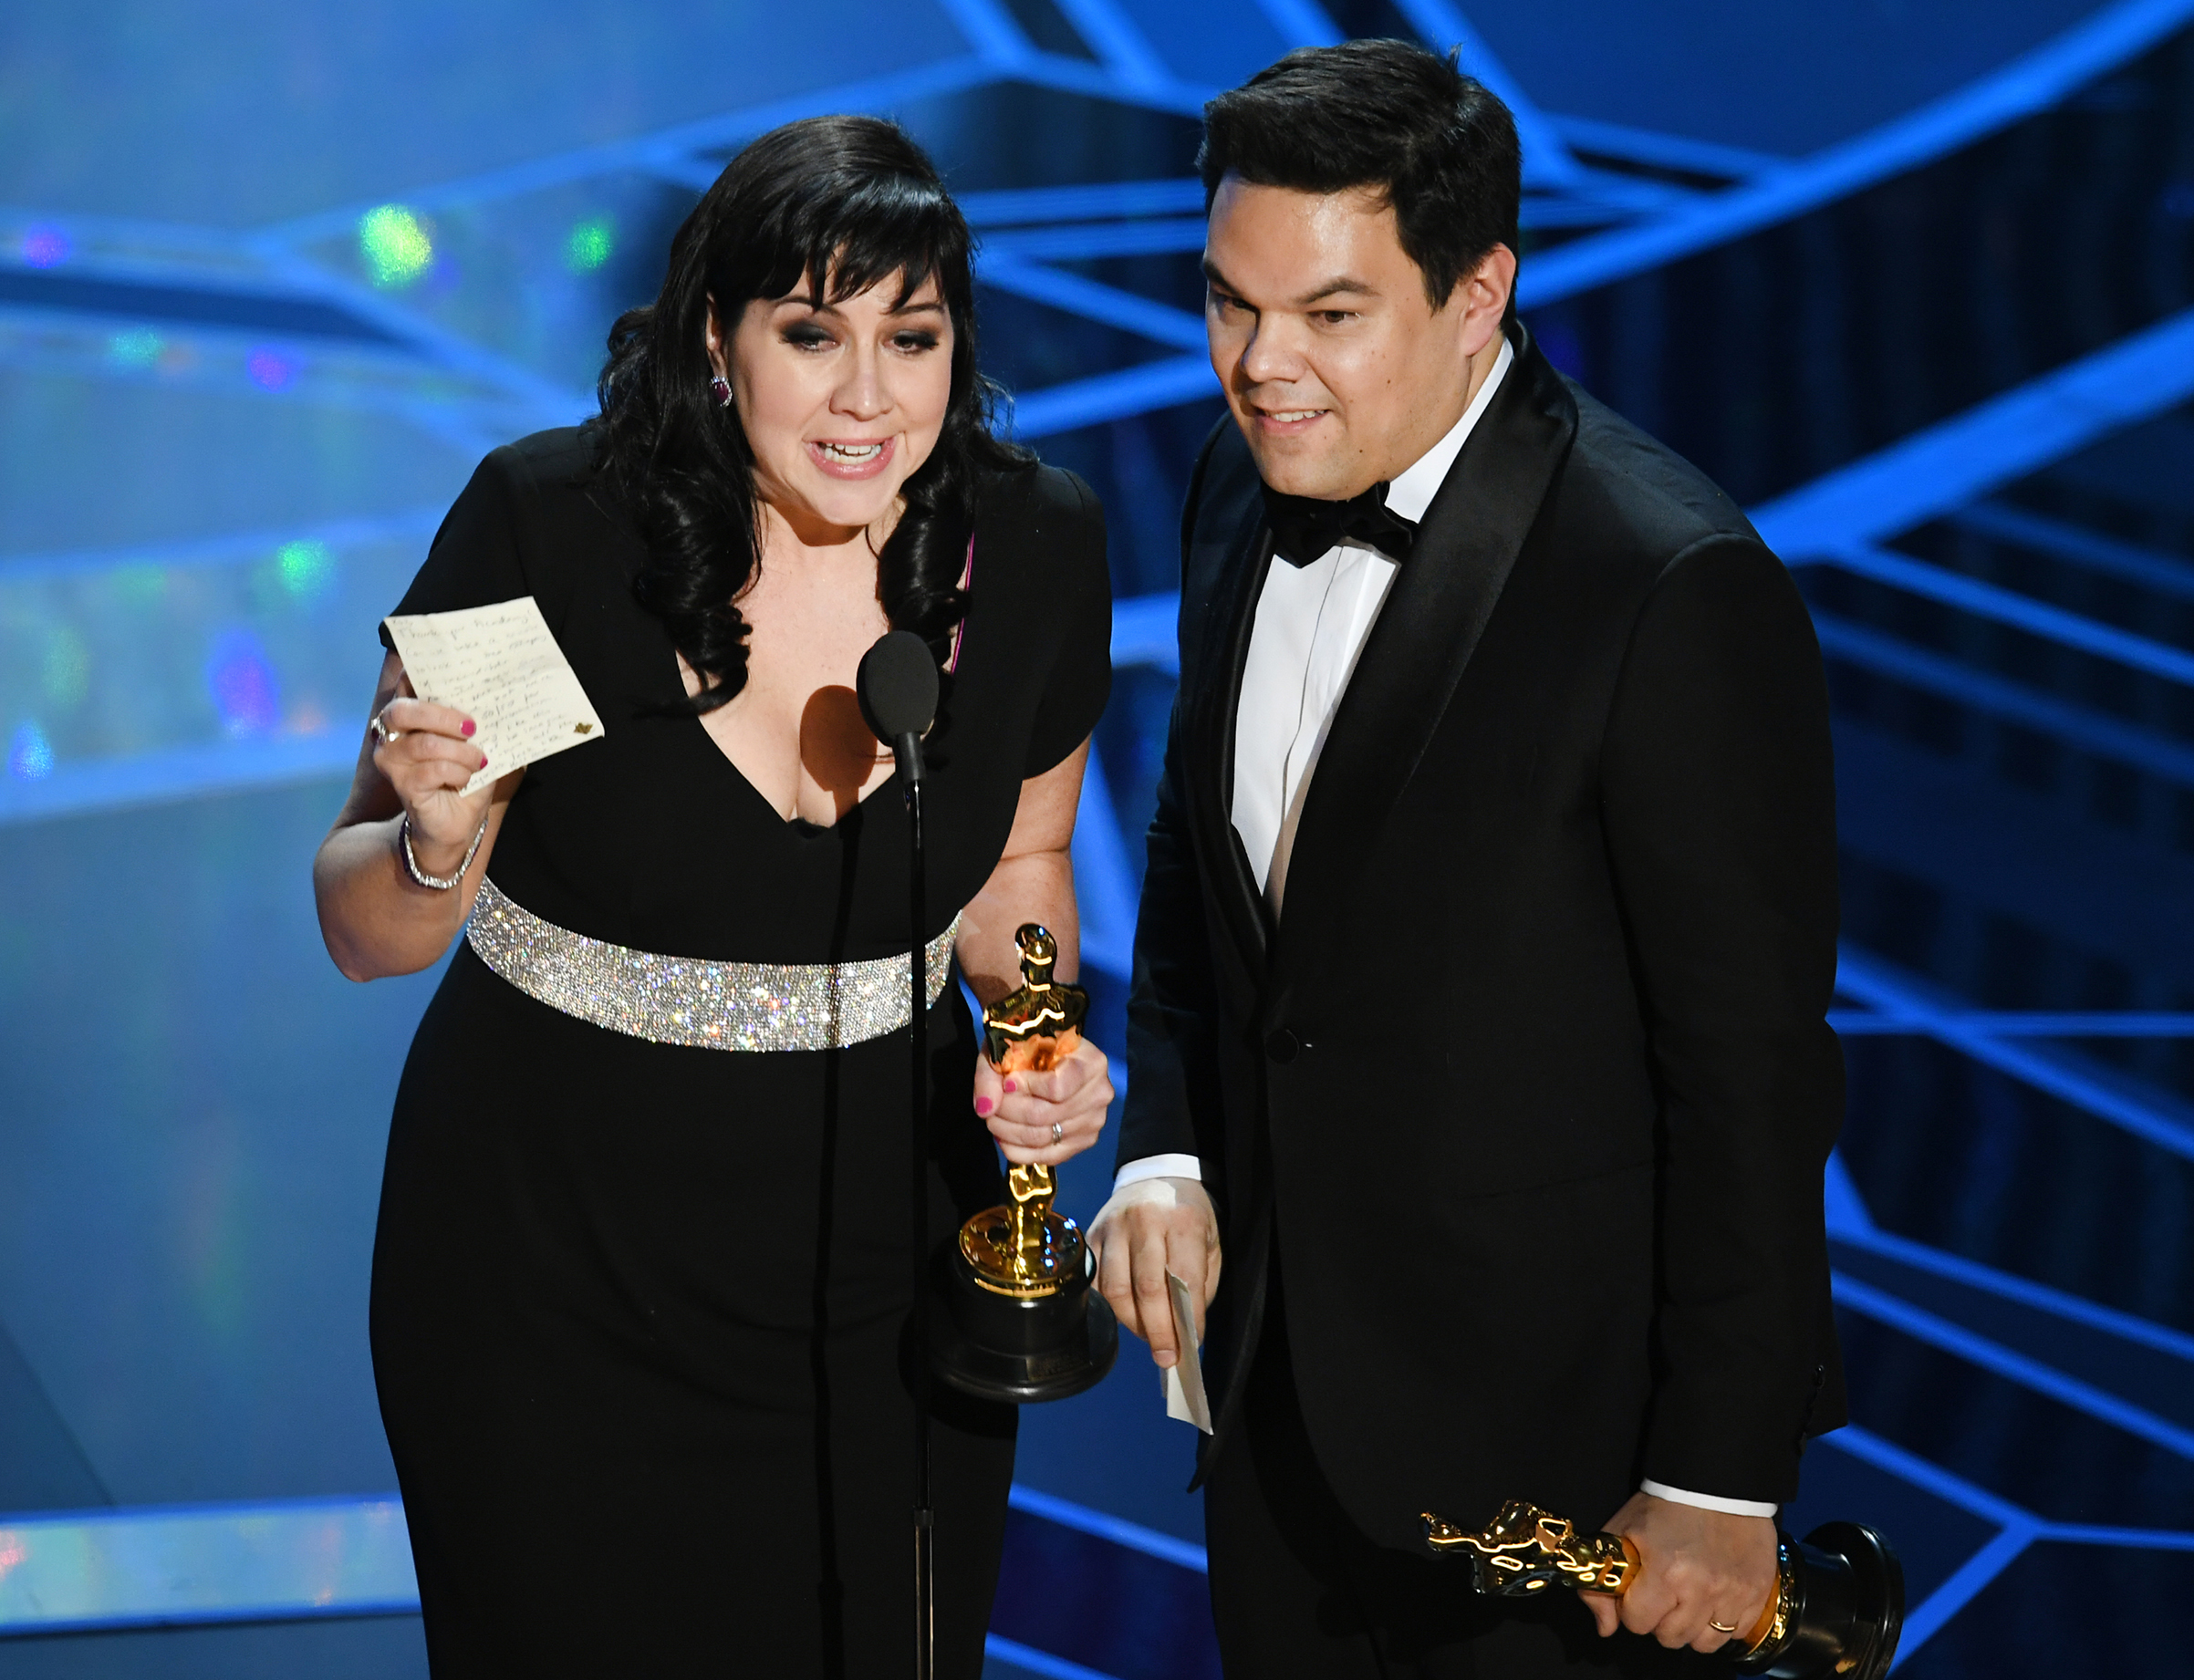 Songwriters Kristen Anderson-Lopez and Robert Lopez accept Best Original Song for 'Remember Me' from 'Coco' onstage during the 90th Annual Academy Awards at the Dolby Theatre at Hollywood & Highland Center on March 4, 2018 in Hollywood.